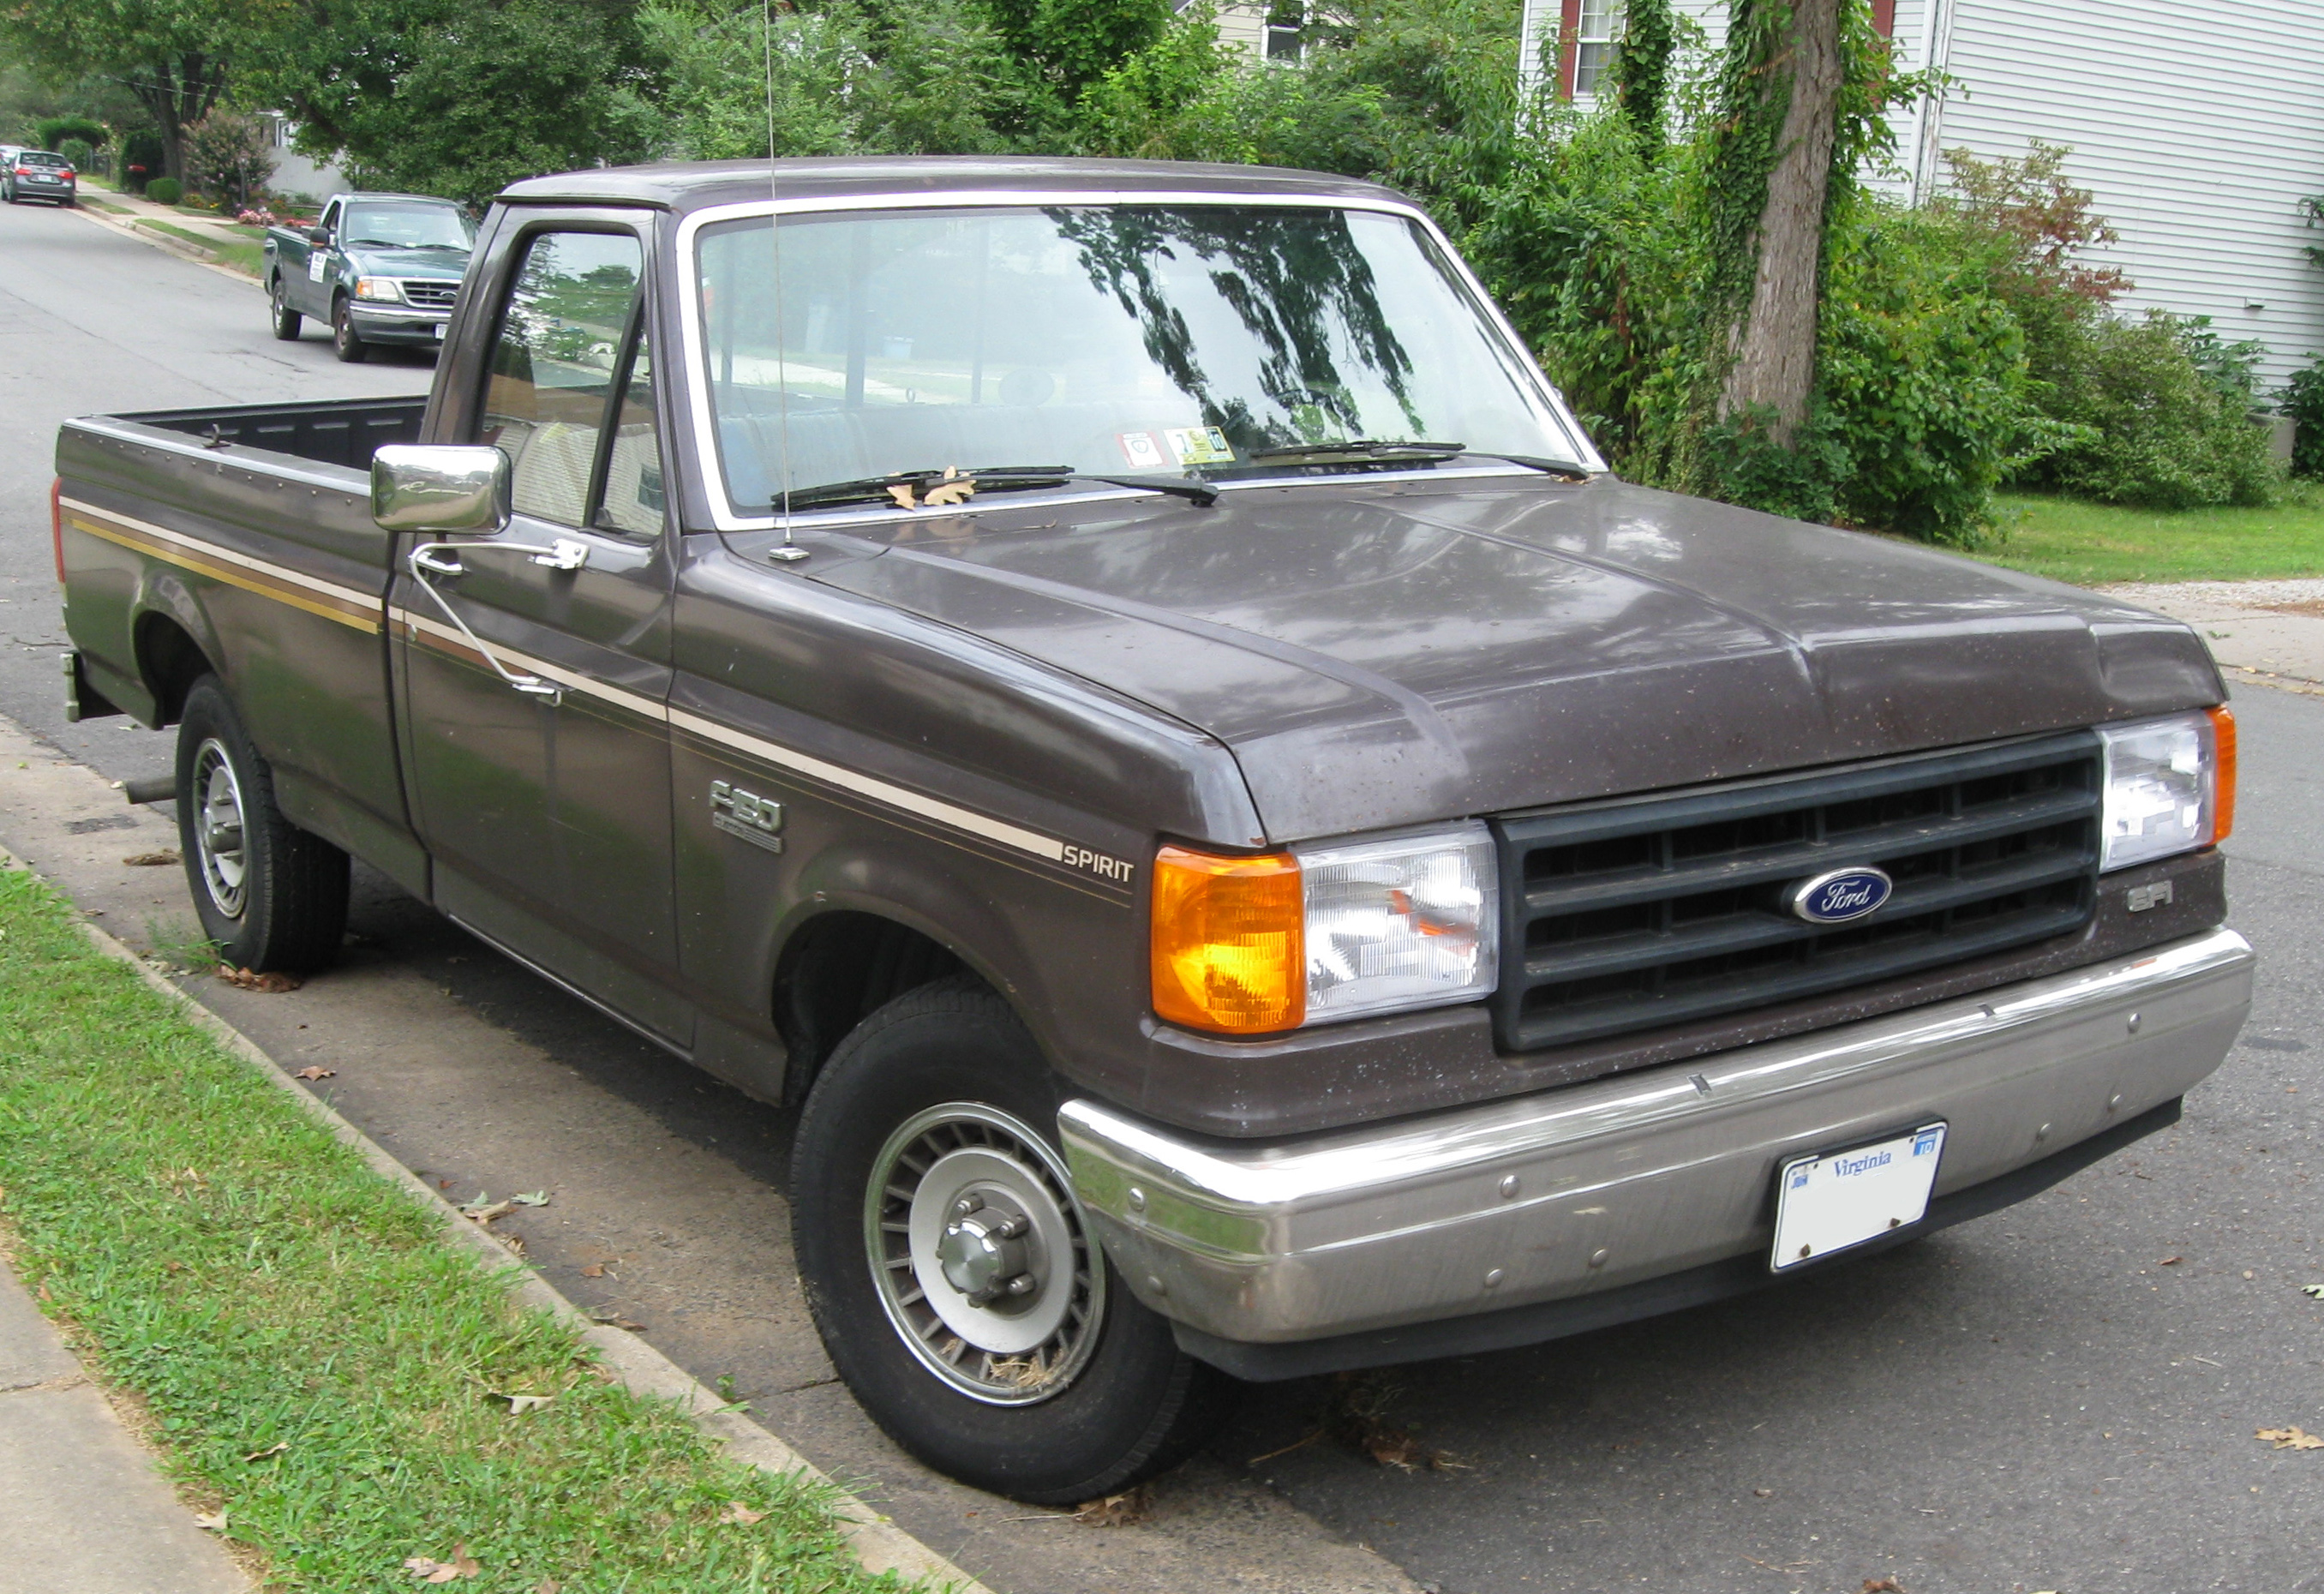 Tremendous Power Wheels Ford F 150 Schematic Basic Electronics Wiring Diagram Ranpur Mohammedshrine Wiring Digital Resources Ranpurmohammedshrineorg